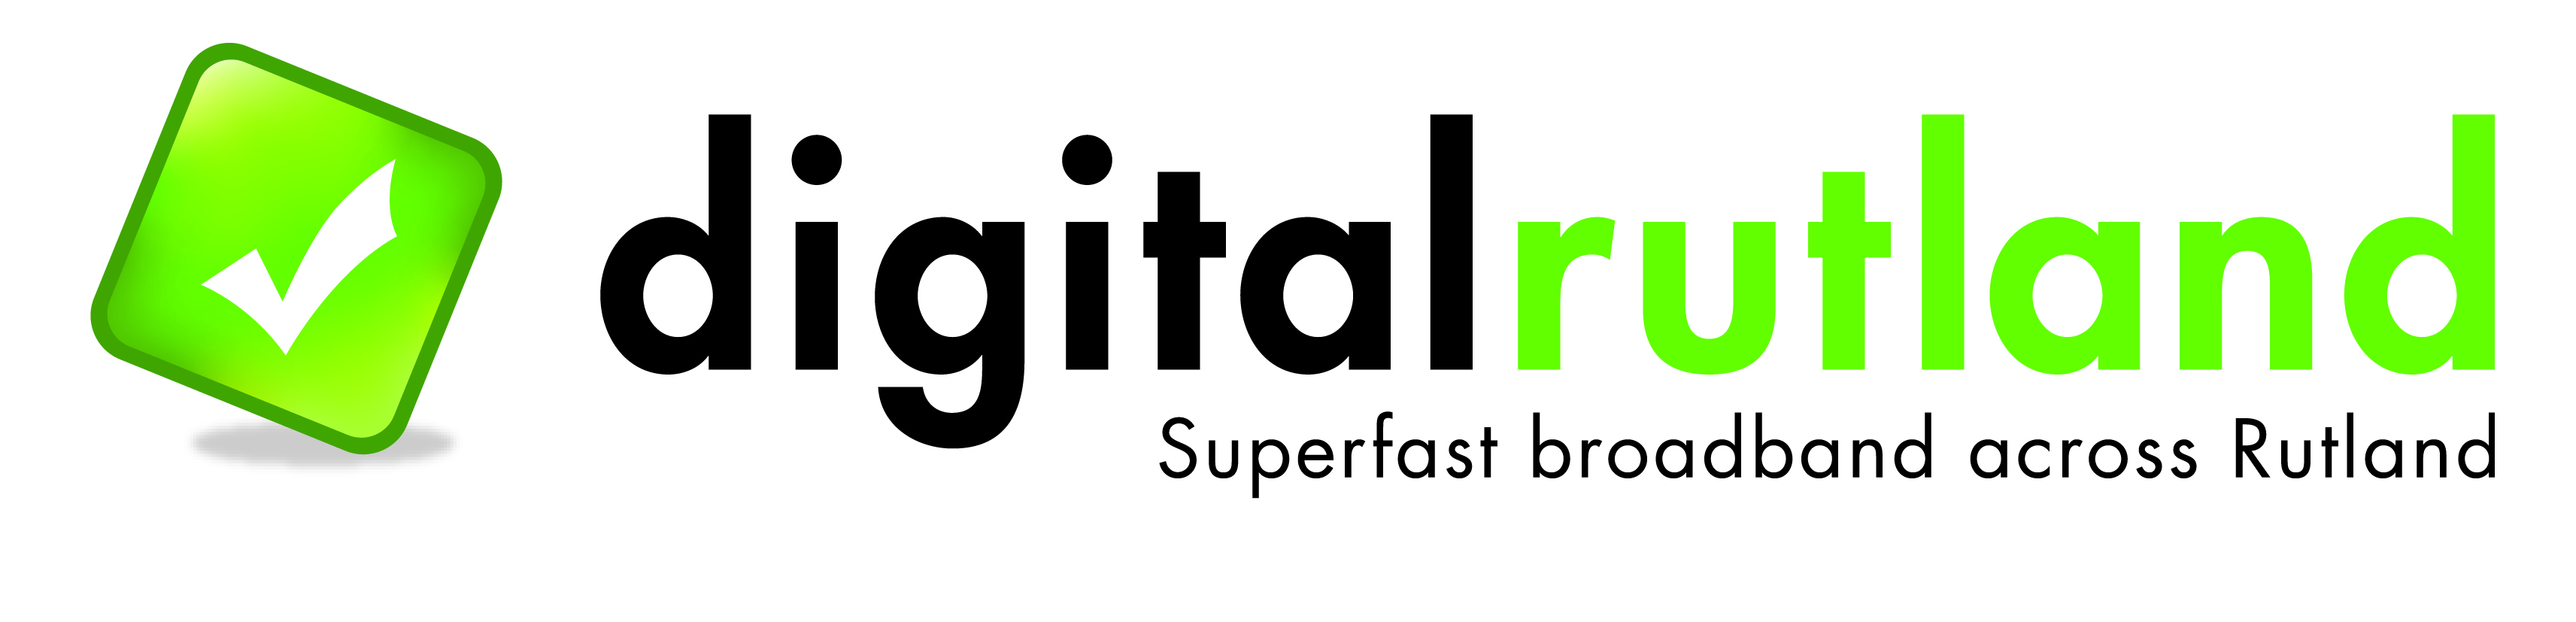 DigitalRutland superfast .jpg